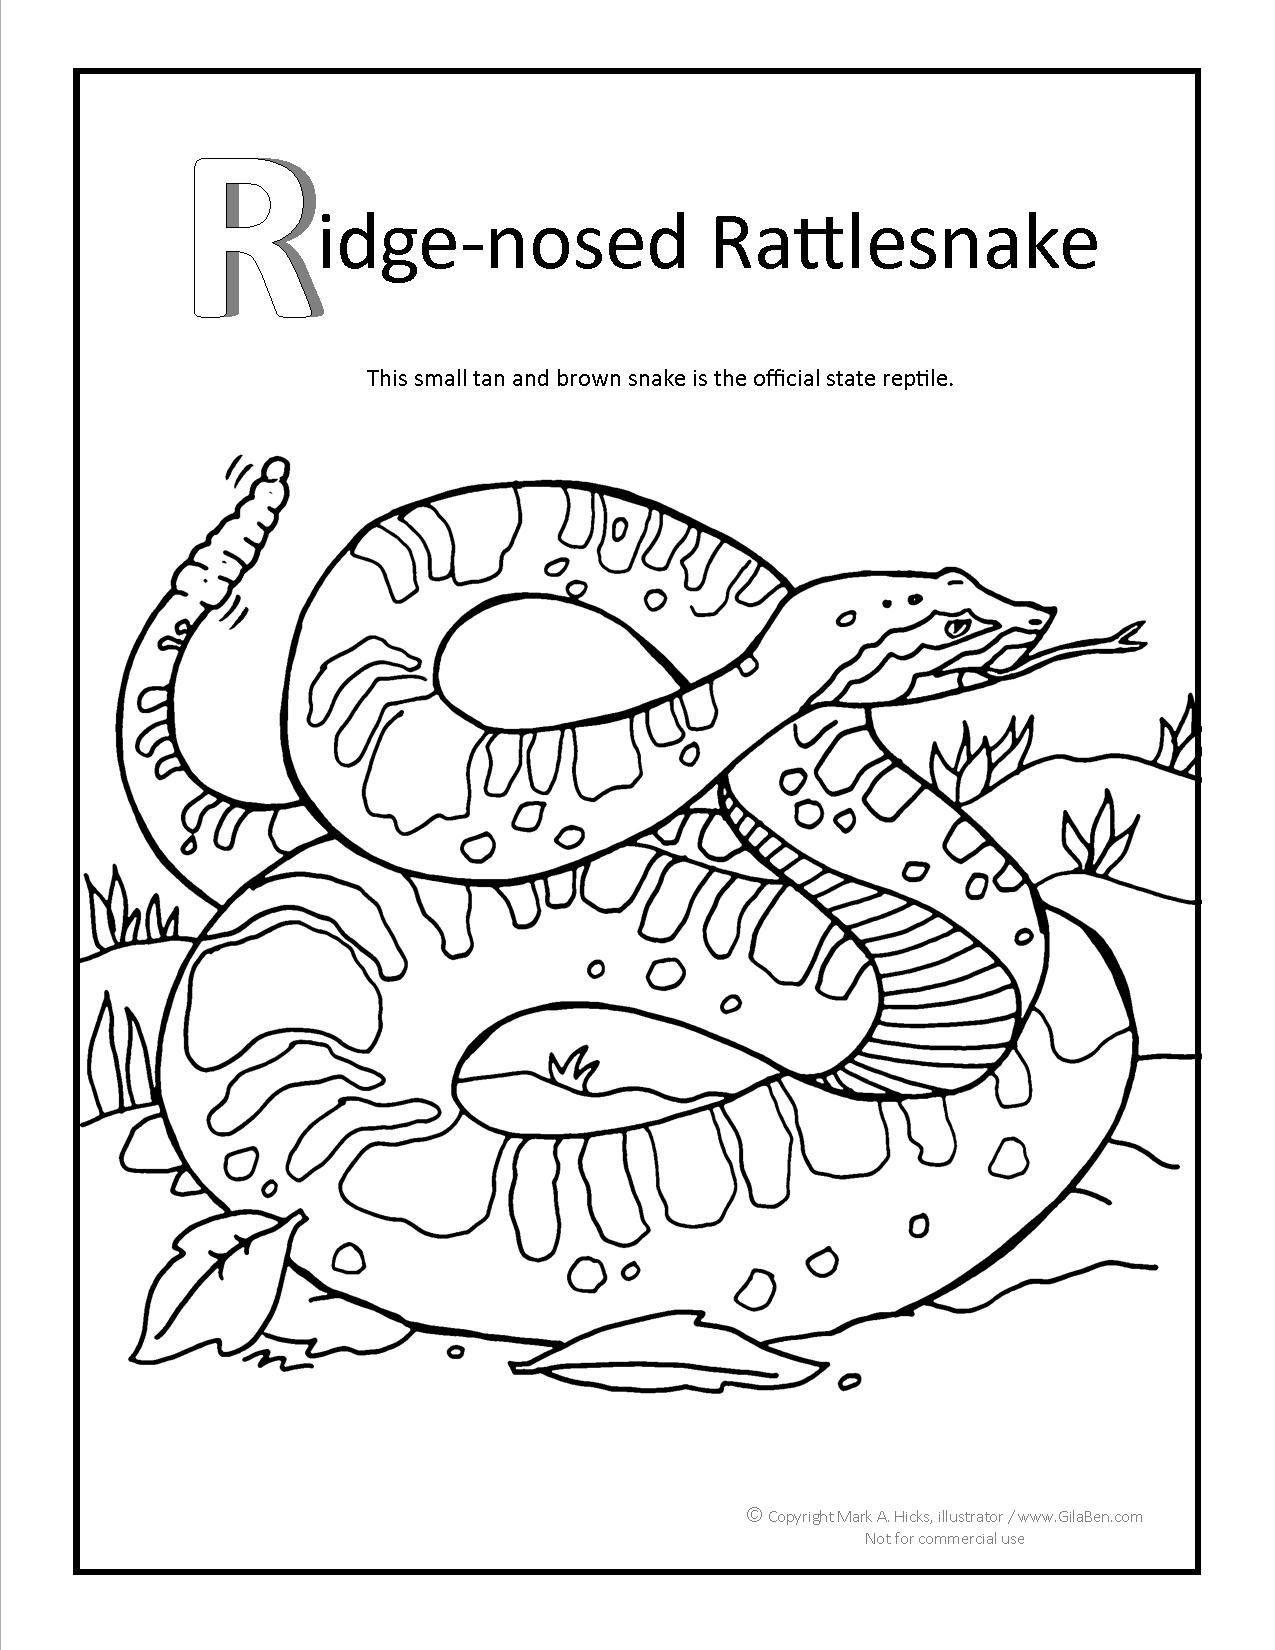 1275x1650 Ridge Nosed Rattlesnake Coloring Page At Gilaben Com Arizona